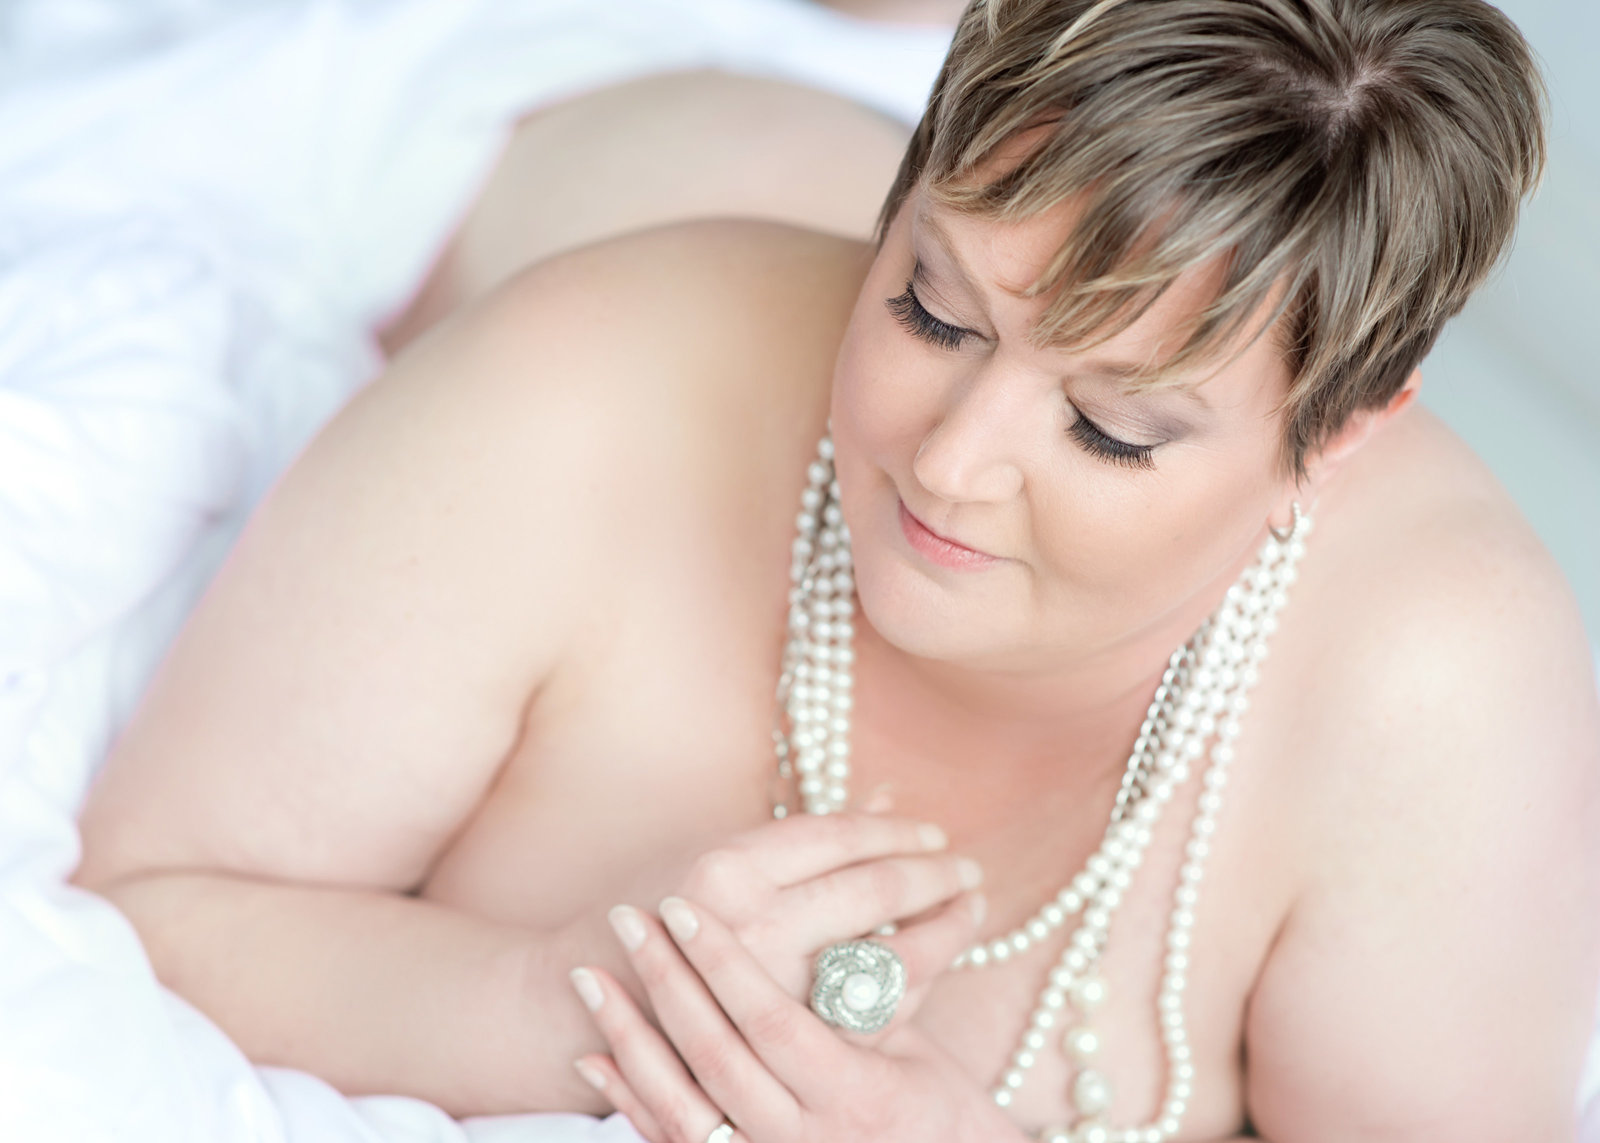 minneapolis-boudoir-photography-759